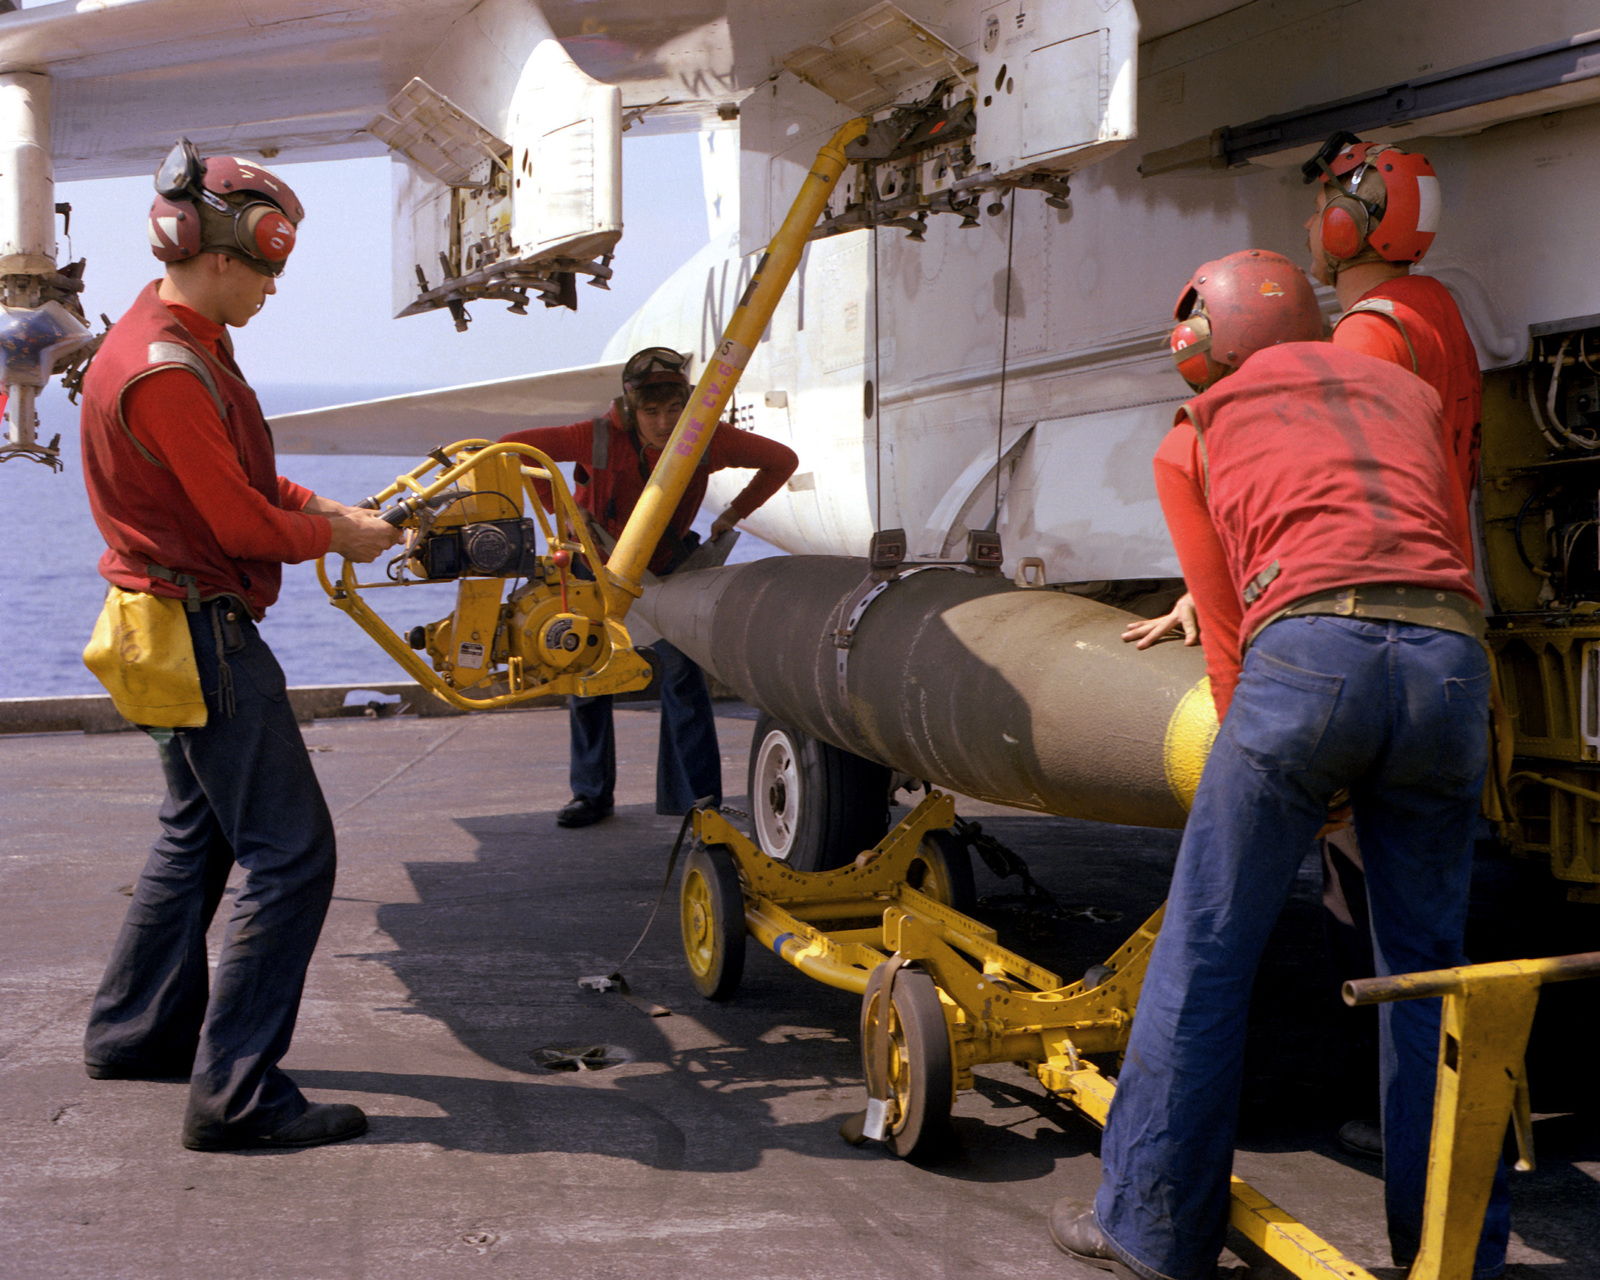 Four flight deck crewmen aboard the aircraft carrier USS INDEPENDENCE (CV-62) attach a missile to the wing of an A-7 Corsair II aircraft